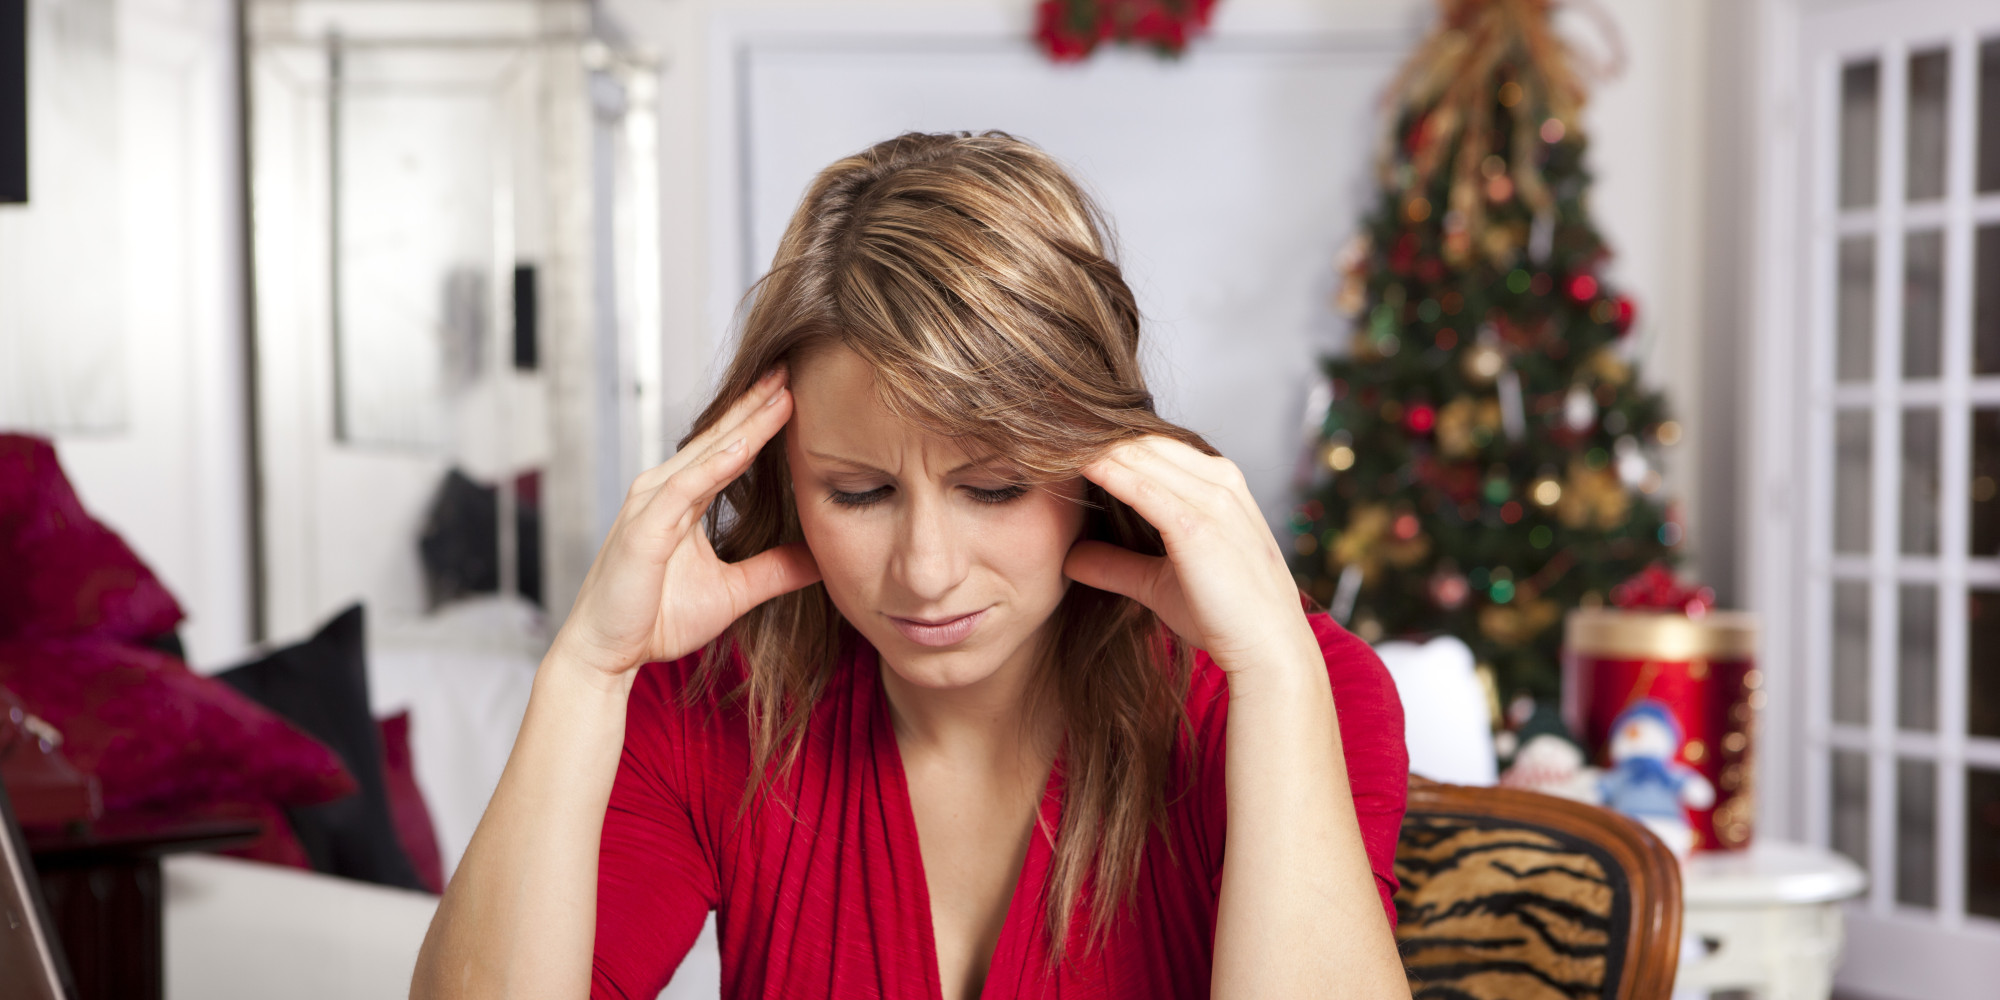 Nutrition|Weight Loss|Eating Psychology o-CHRISTMAS-STRESS-facebook Binge Eating Eating Disorder Healthy Eating